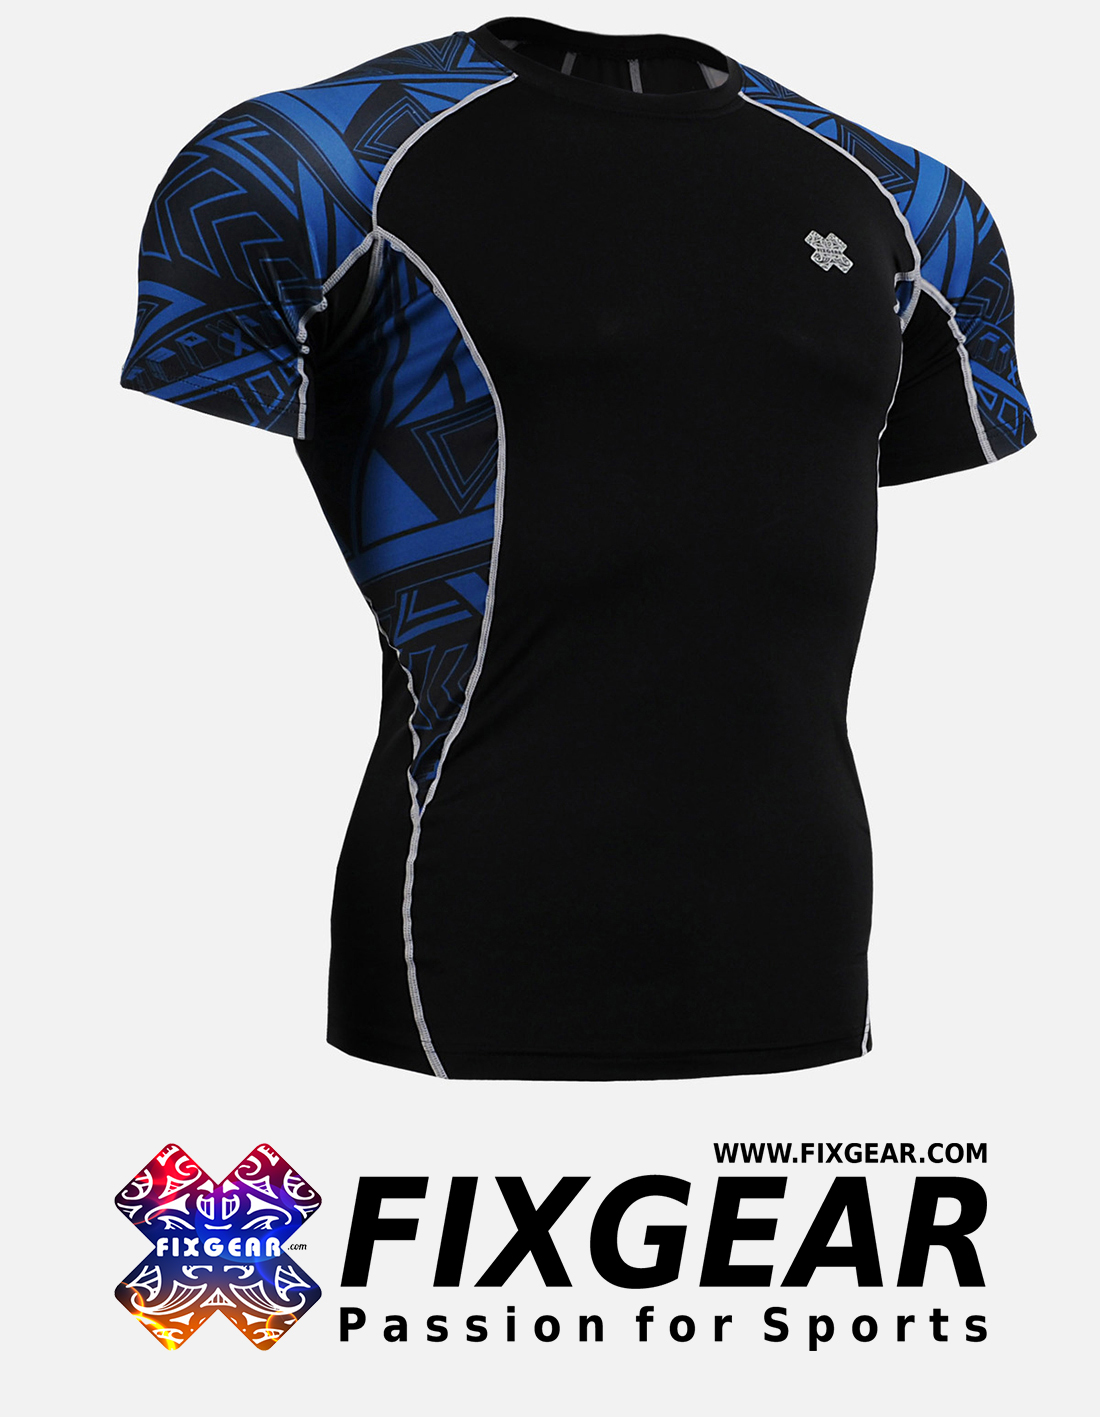 FIXGEAR C2S-B1 Compression Base Layer Shirt Short Sleeve